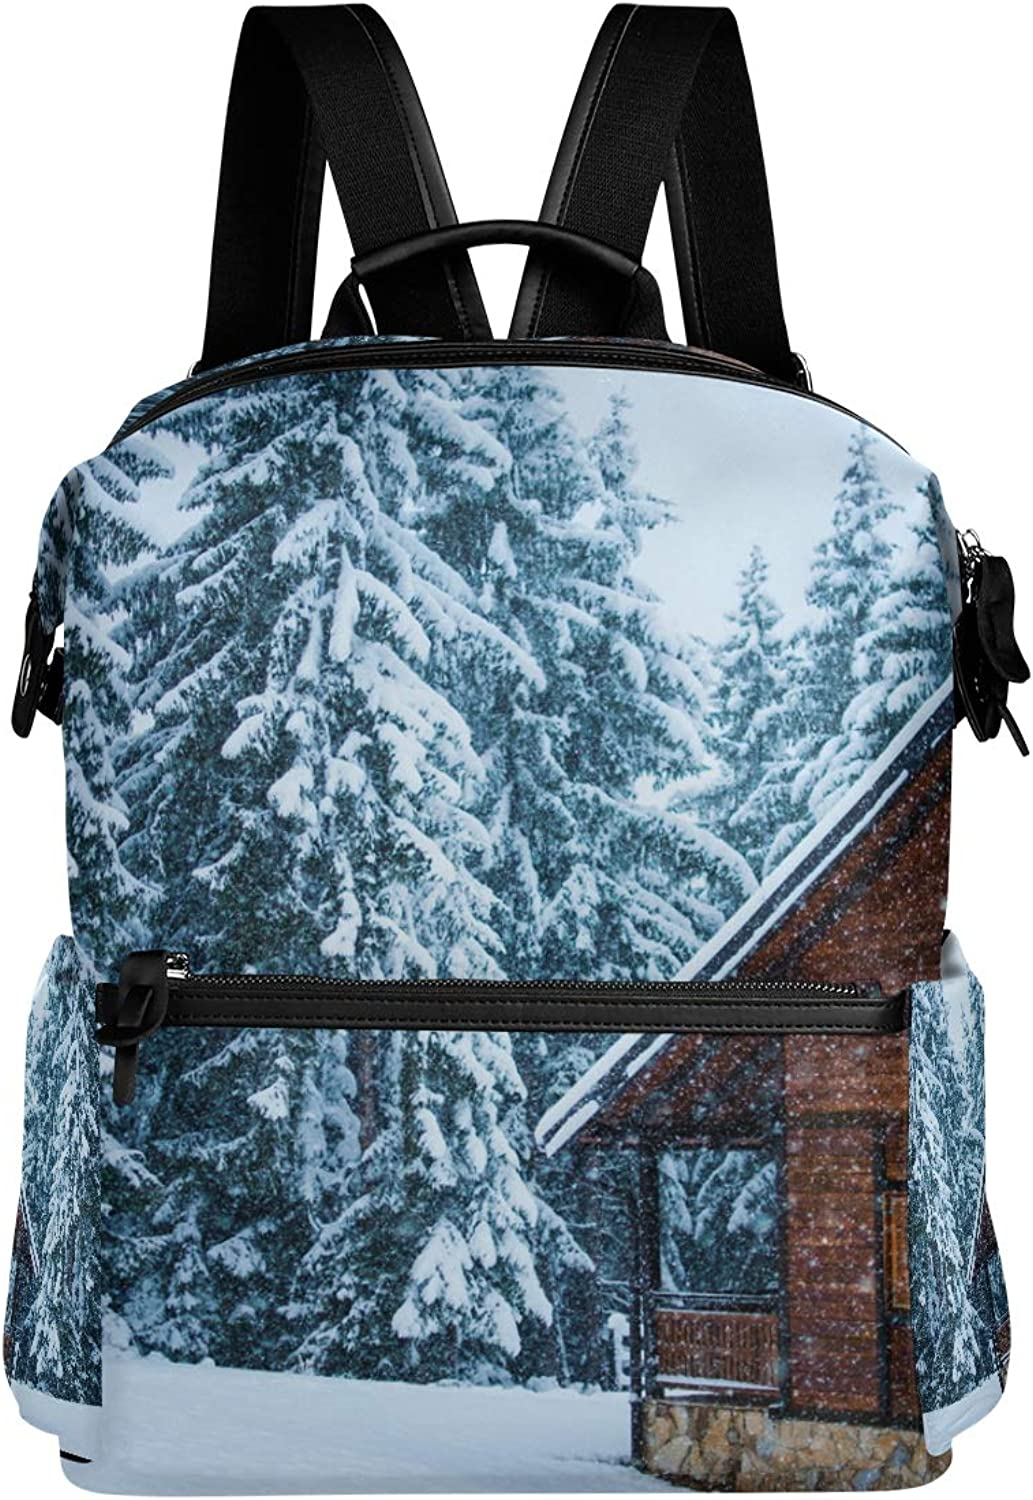 MONTOJ Winter Snowy Woodland Hut Leather Travel Bag Campus Backpack